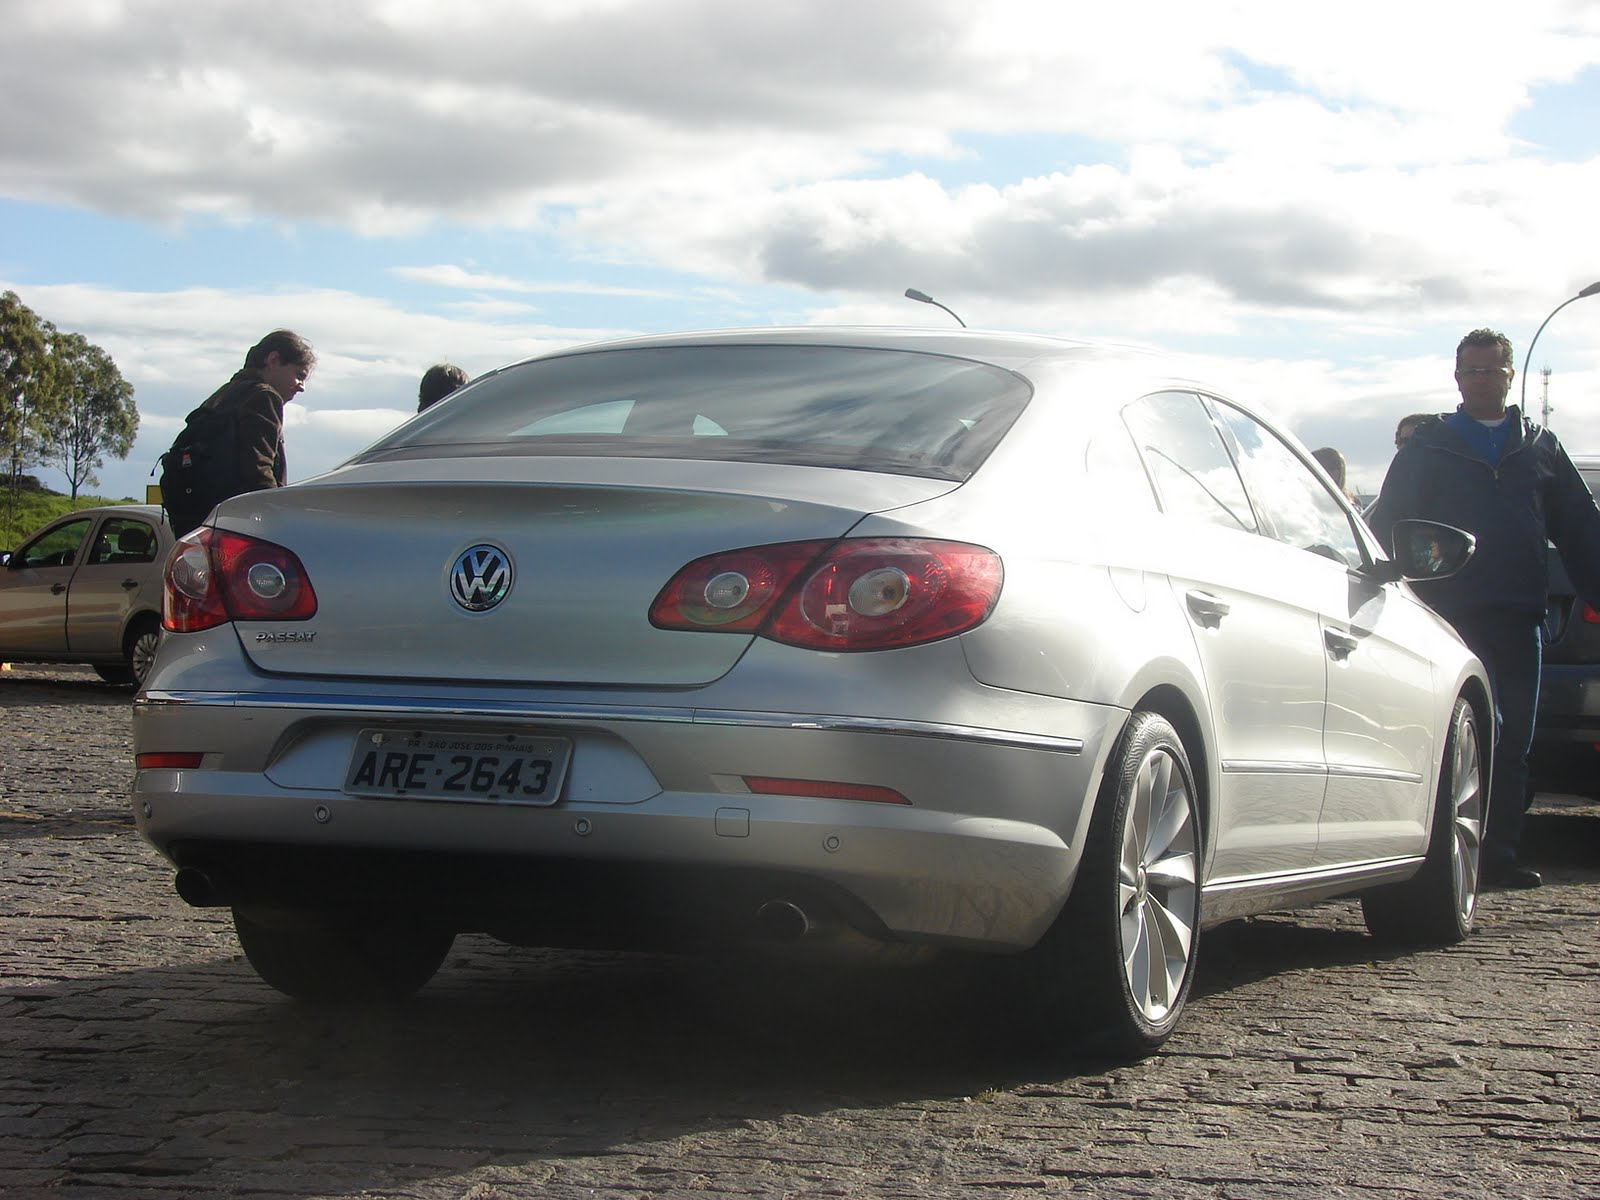 Vw cc 2010 owners manual